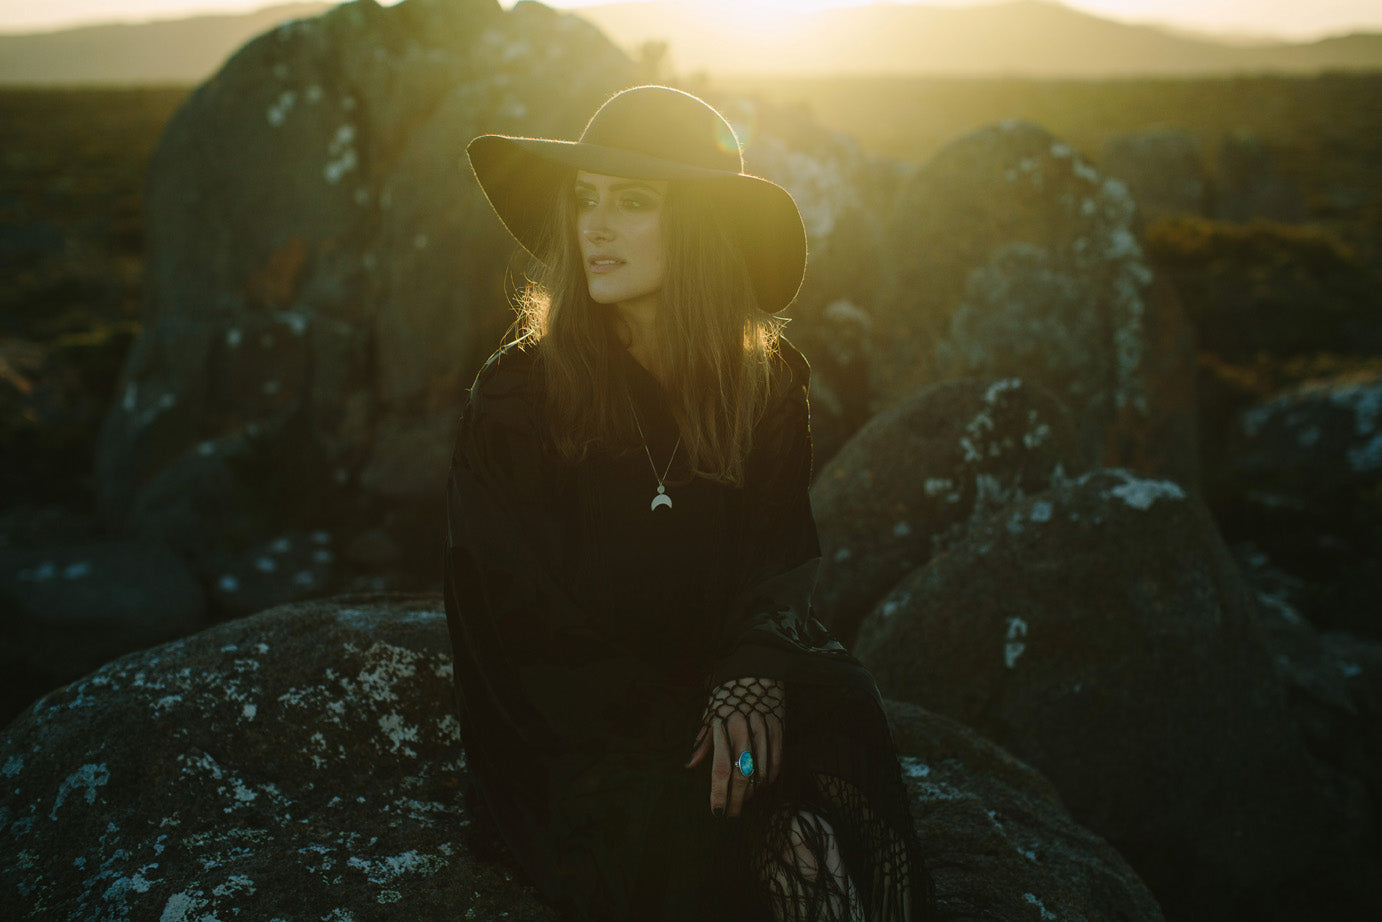 Emily Eliza Arlotte Handcrafted Fine Jewellery - Sterling Silver Crescent Moon Goddess Necklace Long Girl Wide Brim Hat Kimono Black Lace Sunset Mountain Witchy Dark Hair Boho Bohemian Style Fashion